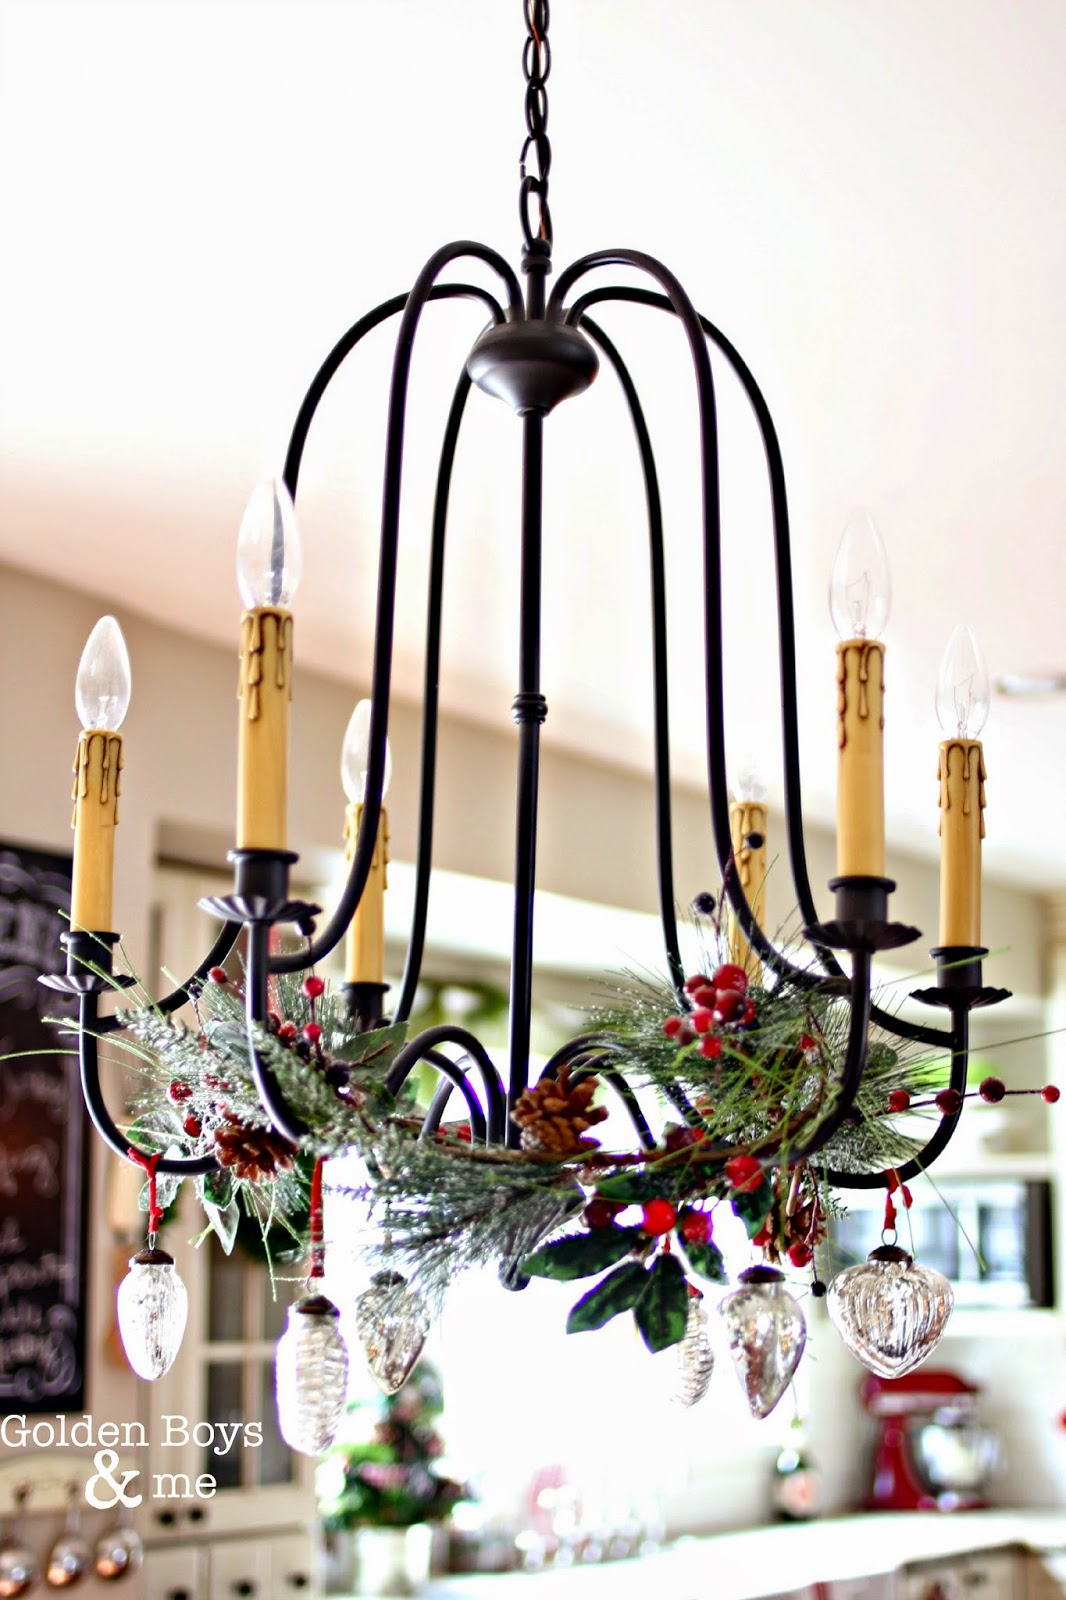 Chandelier with garland and mercury glass ornaments-www.goldenboysandme.com